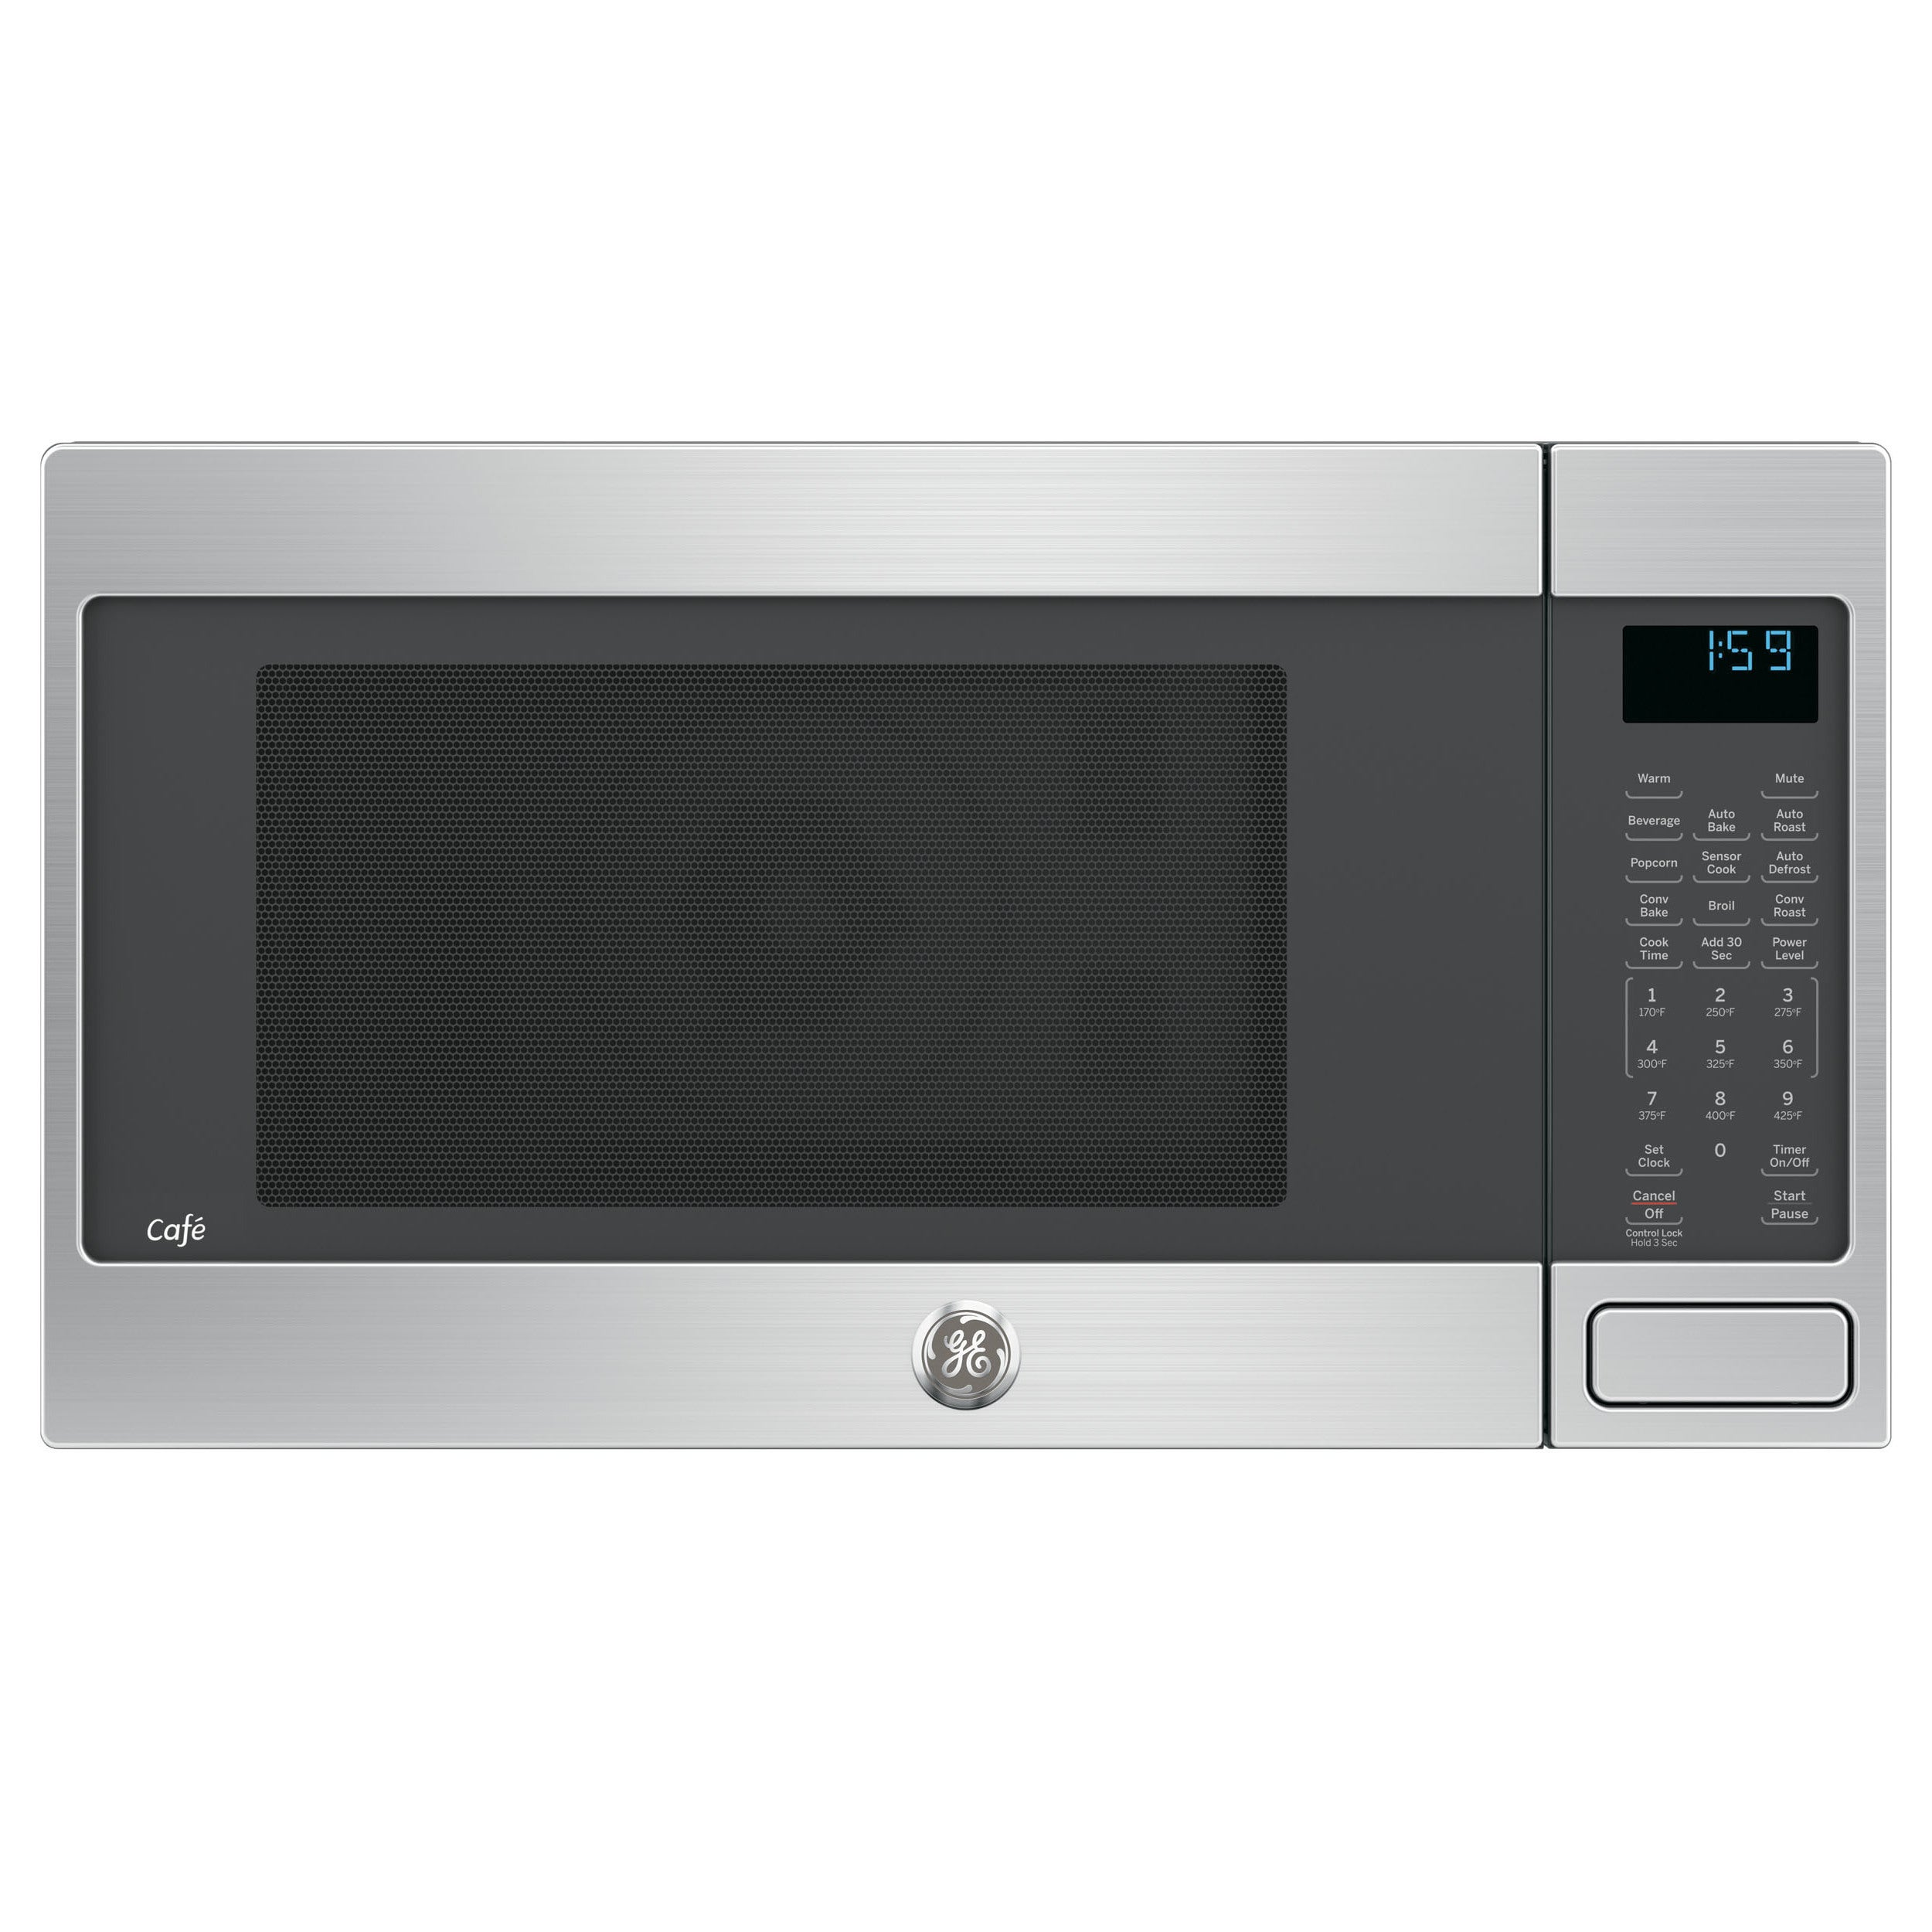 GE Cafe Series 1.5-cubic Feet Countertop Convection/ Micr...